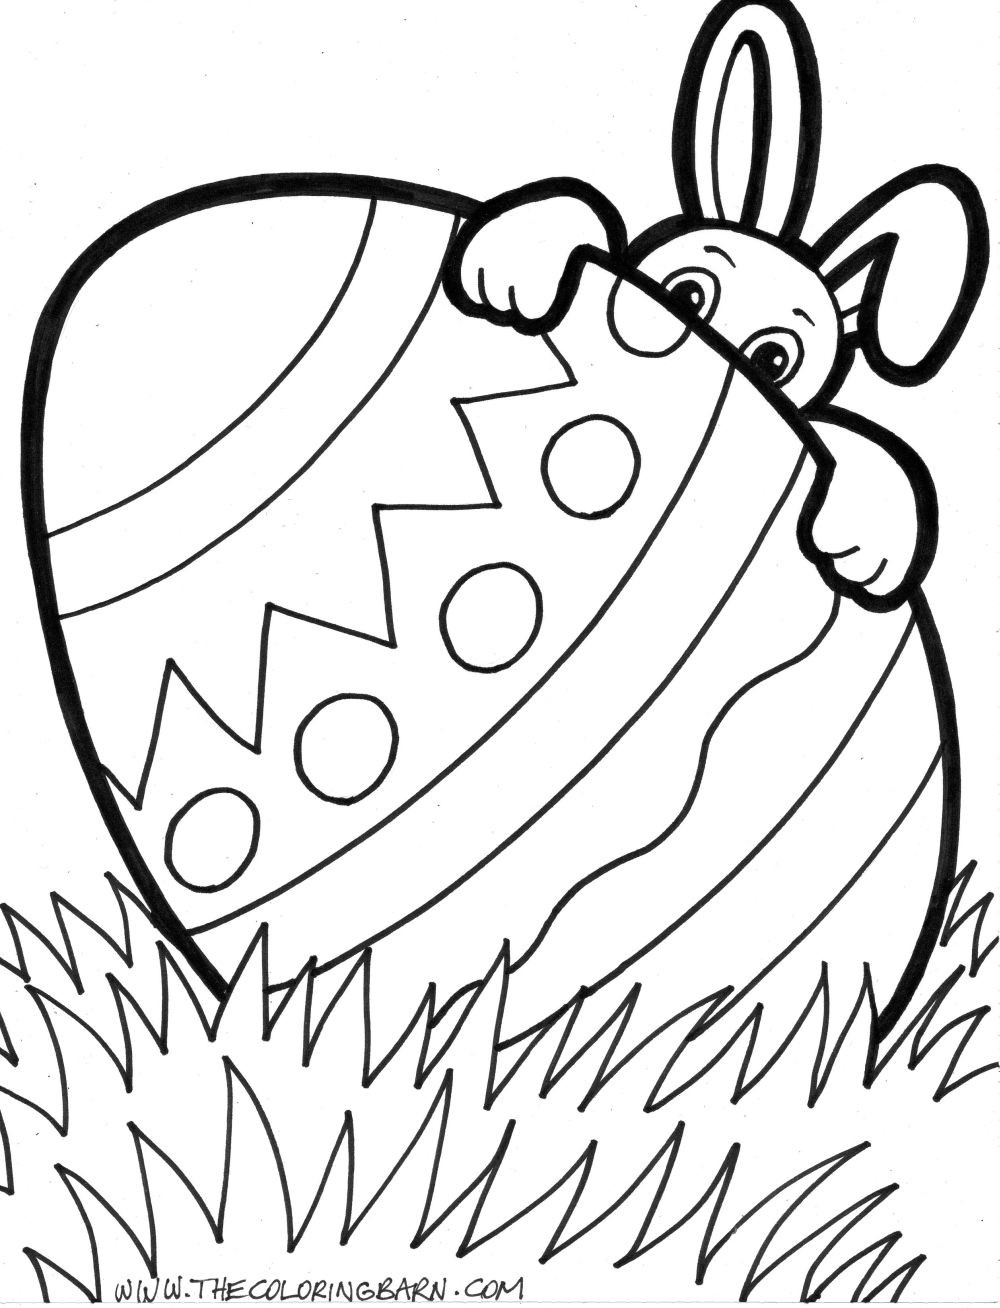 Best ideas about Easter Coloring Pages For Girls . Save or Pin Easter Coloring Pages 17 Now.